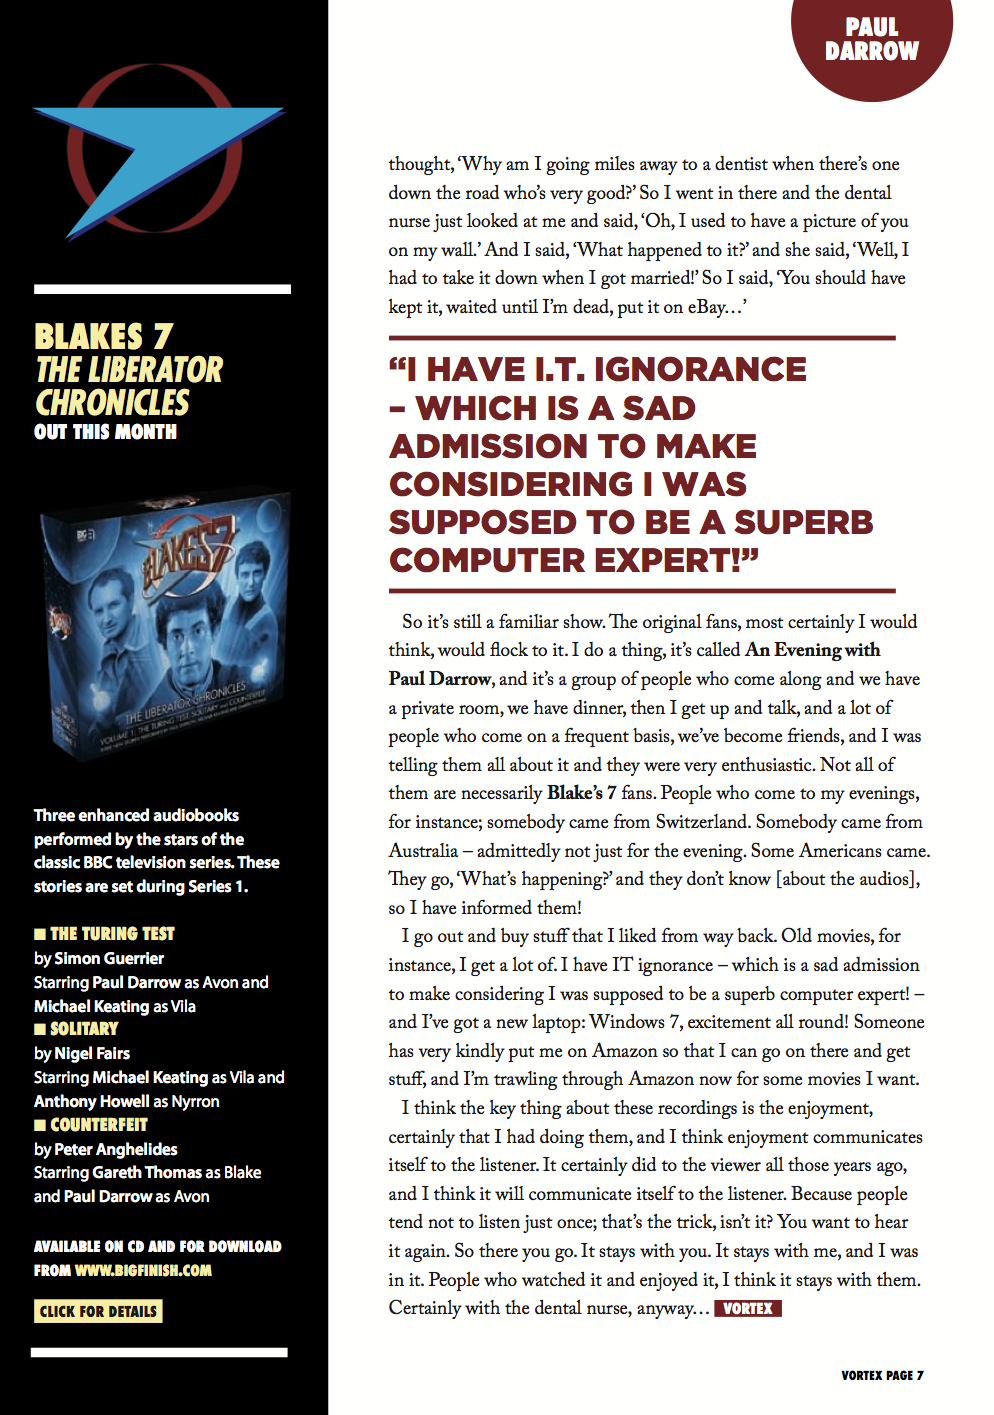 Paul Darrow Interview Page 4